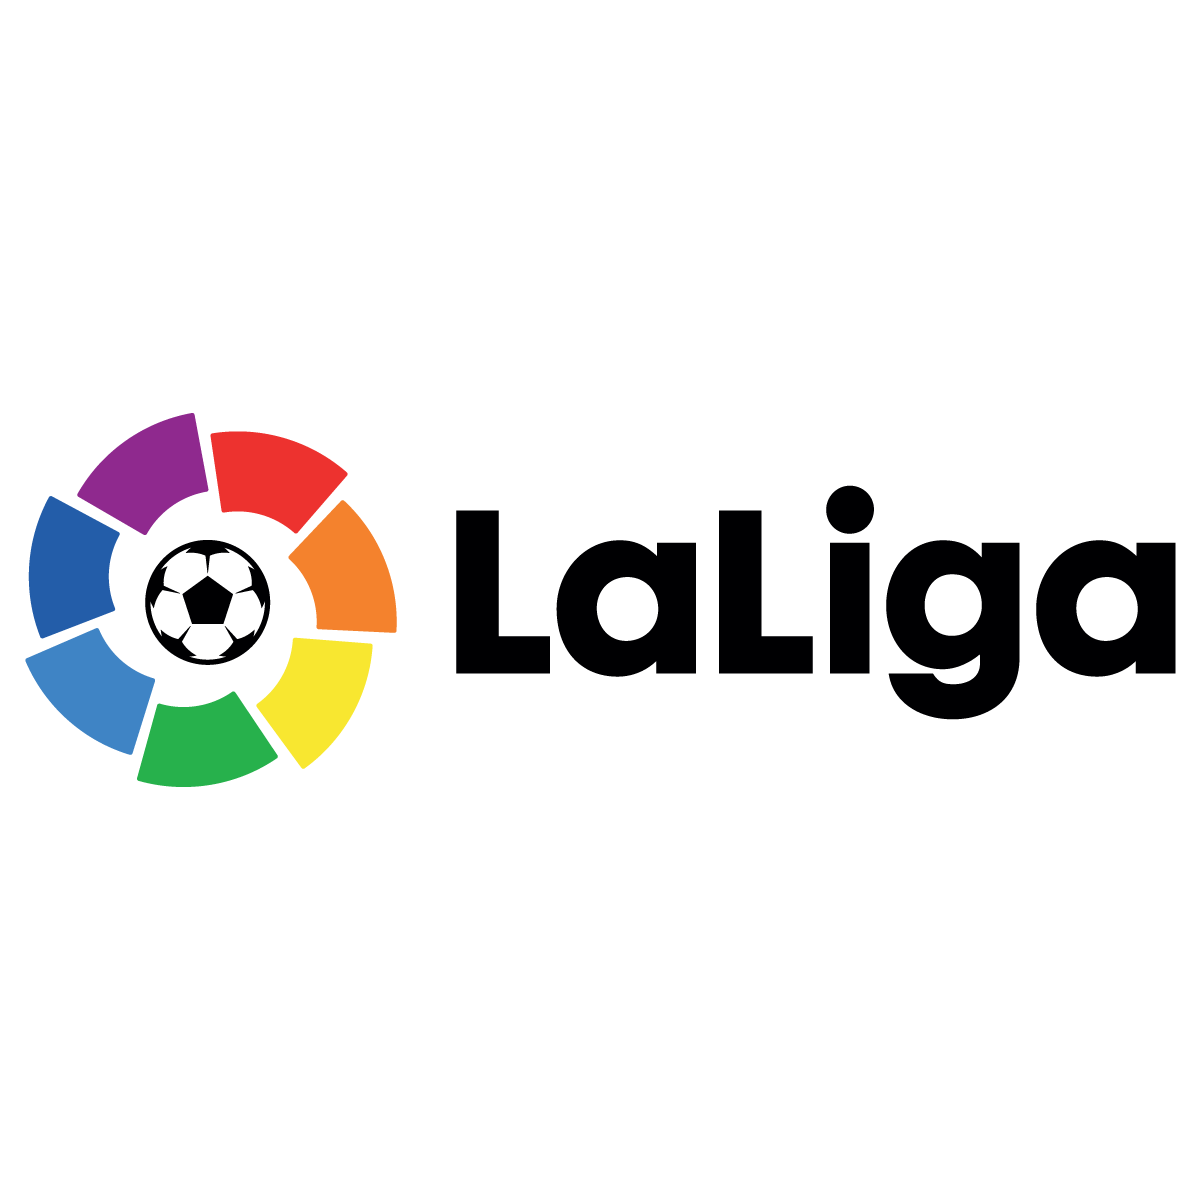 LaLiga Horizontal Logo Vector Transparent.